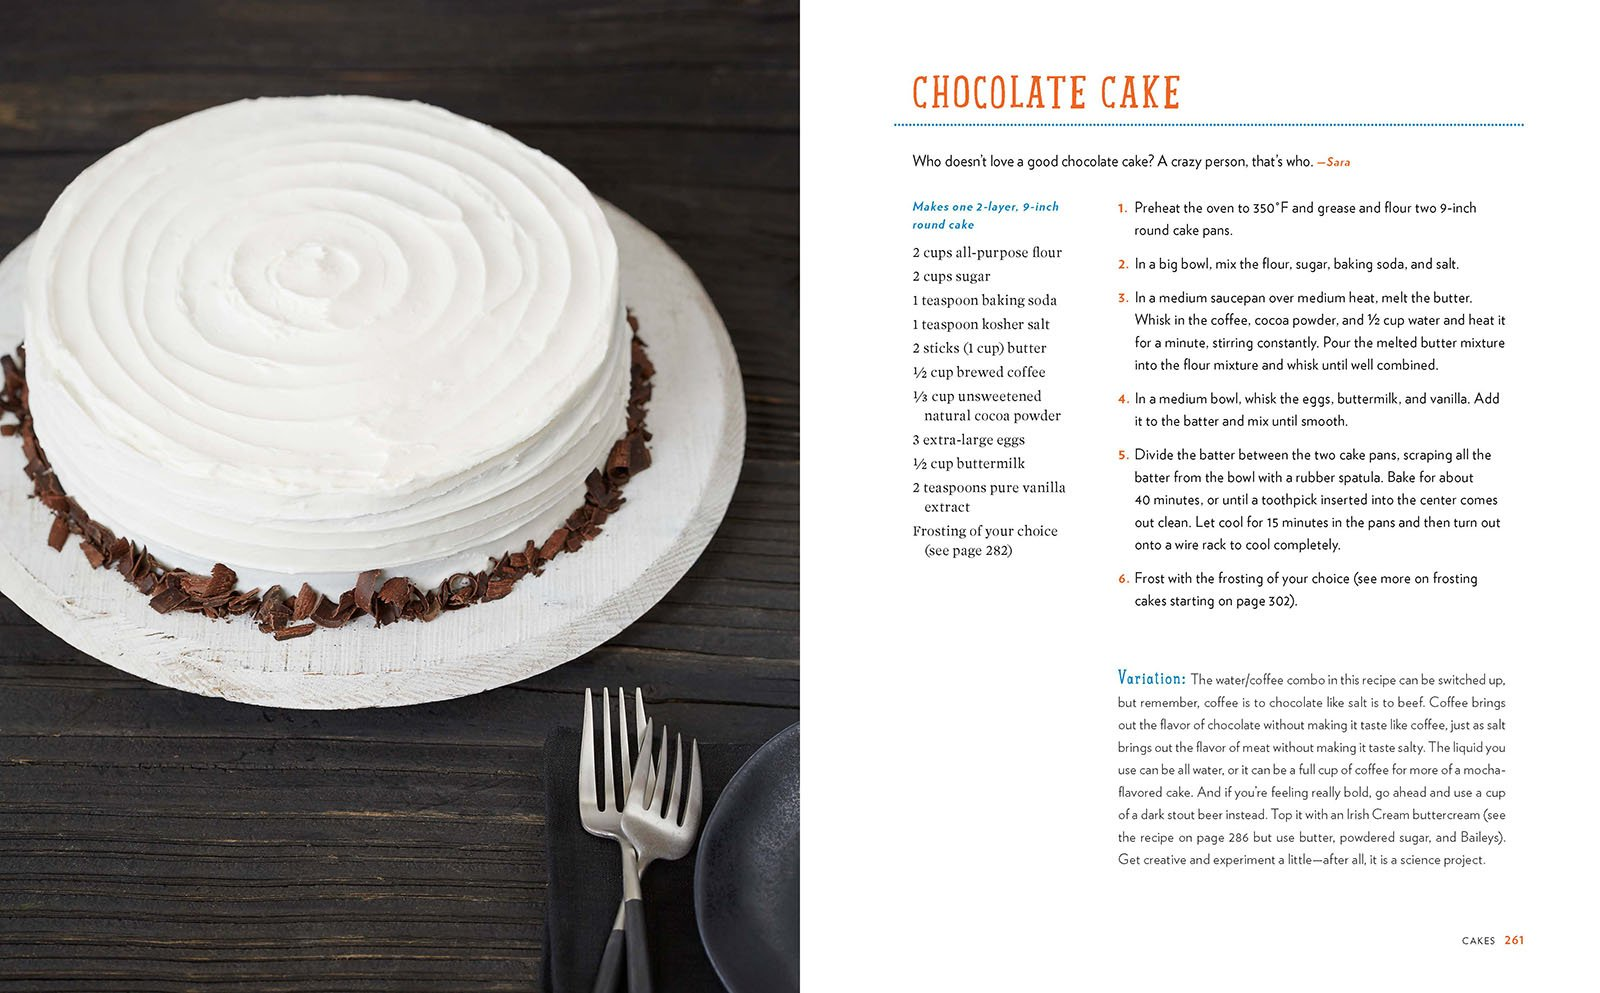 Duff Bakes: Think and Bake Like a Pro at Home by William Morrow Company